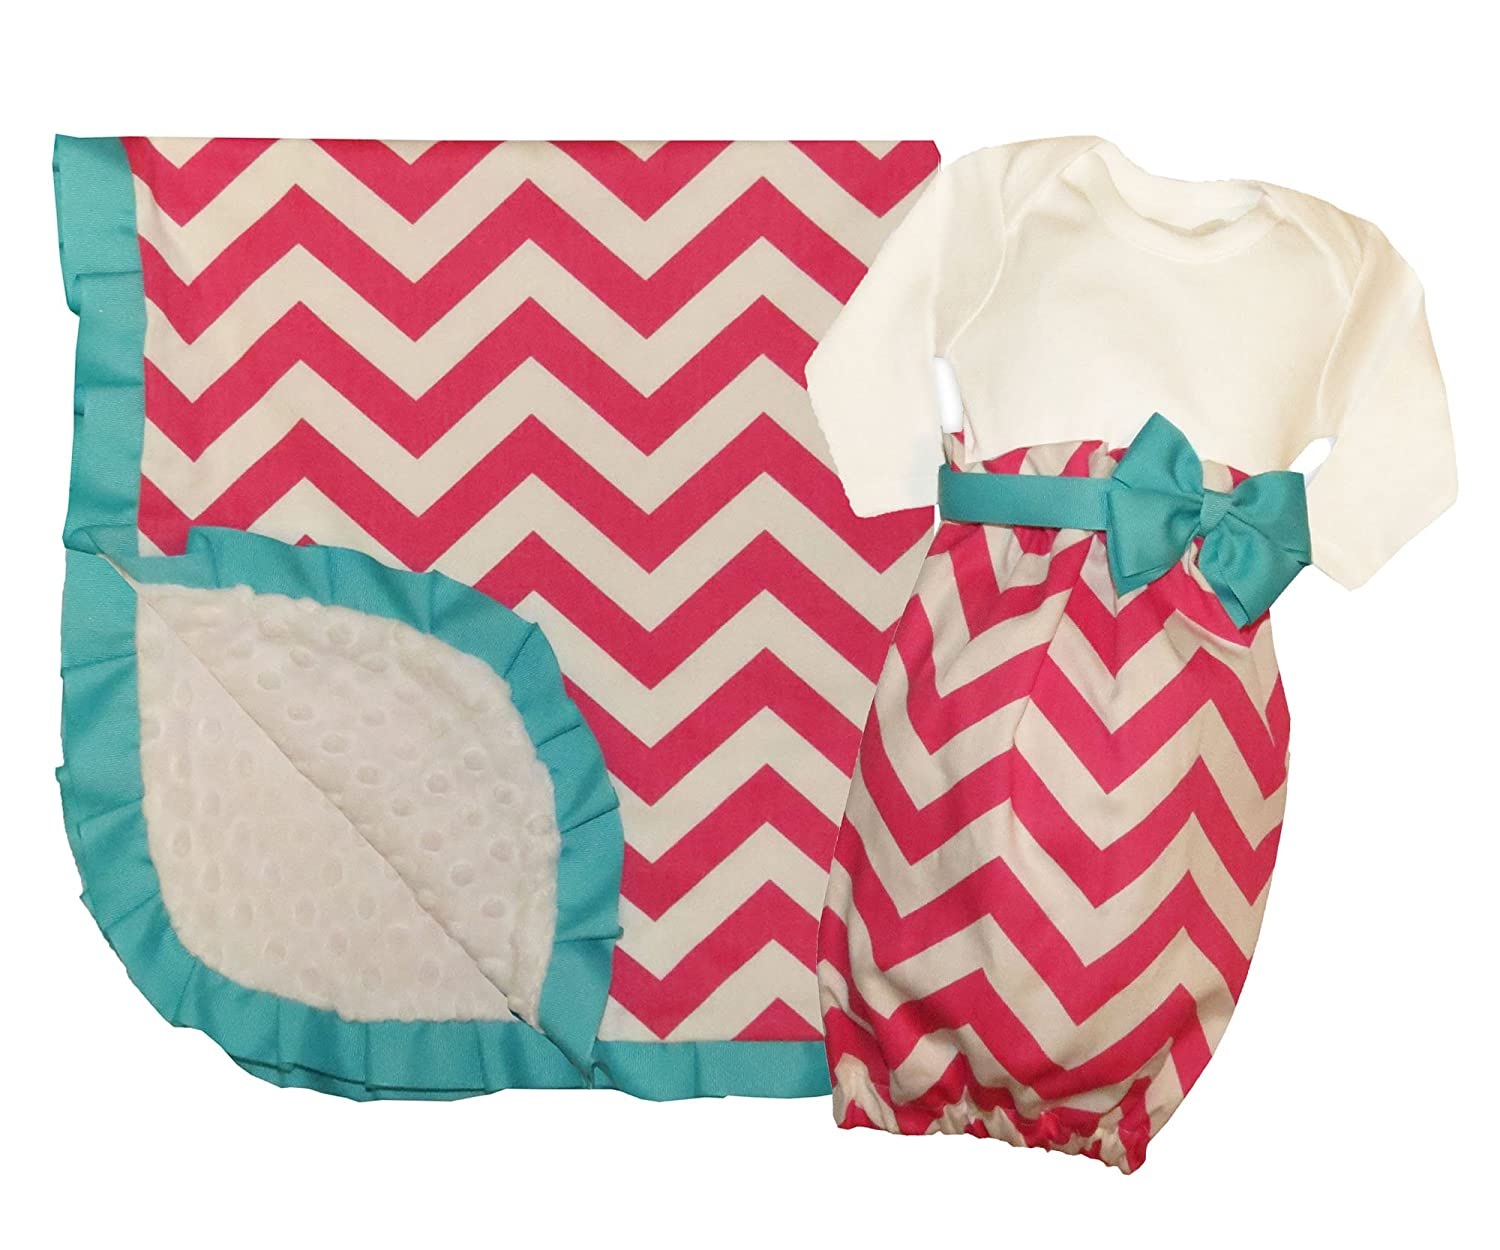 Caught ya lookin 'Baby Gift set, Girls rosa e bianco chevron Minky